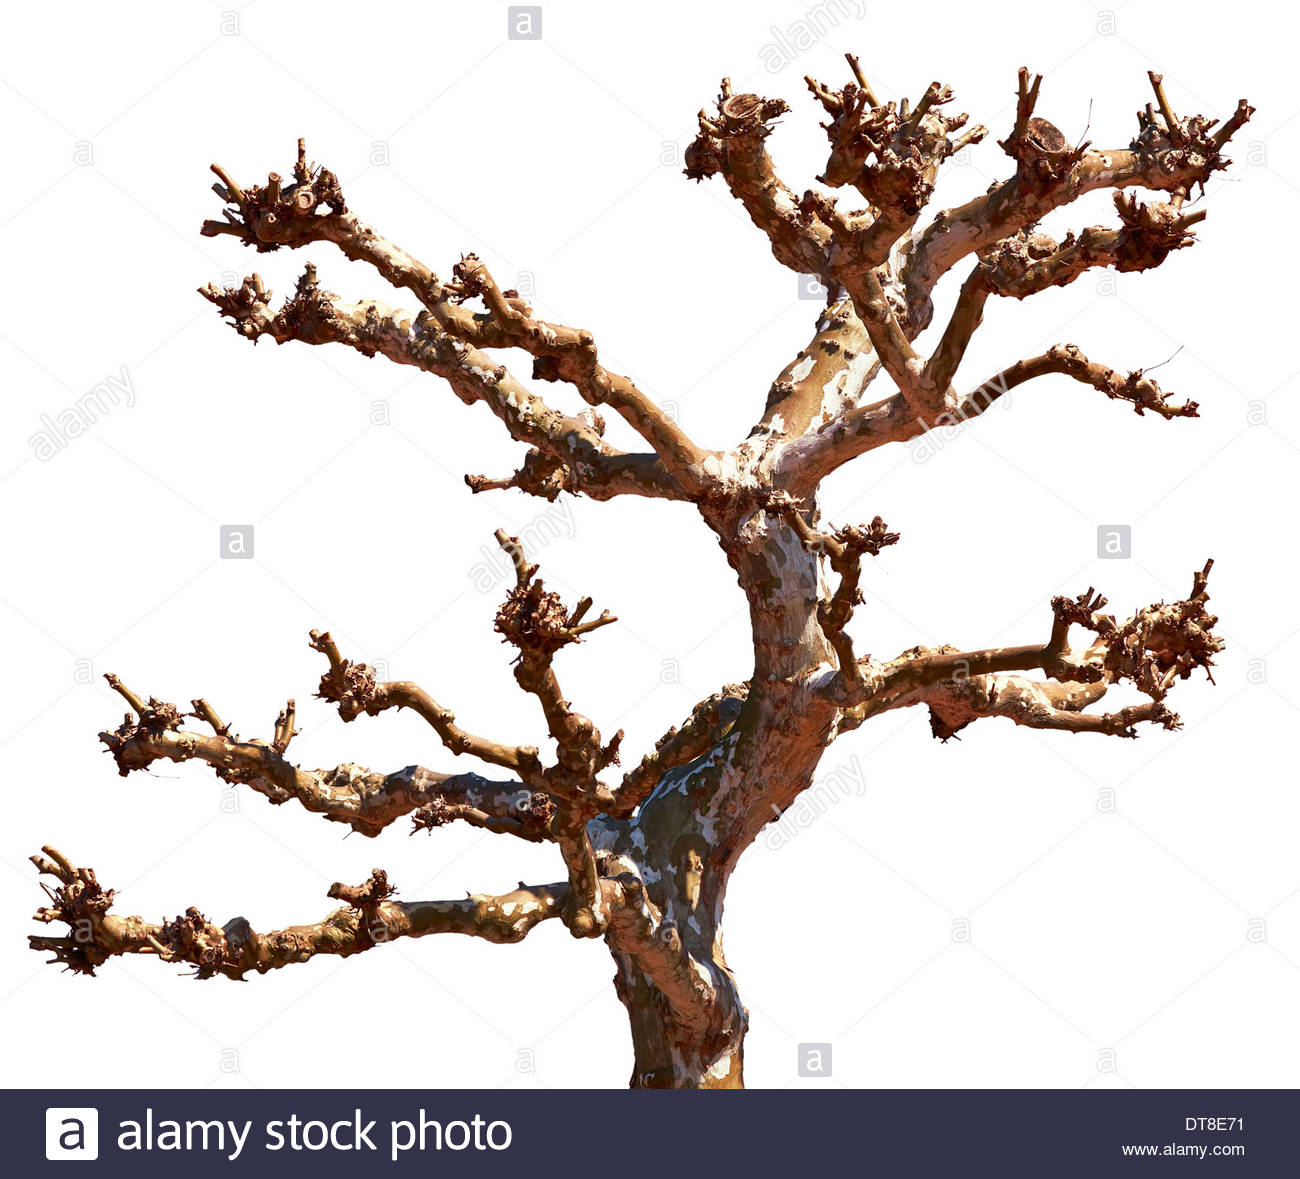 Old Dry Dead Tree Trunk And Branches Isilated On White Background.